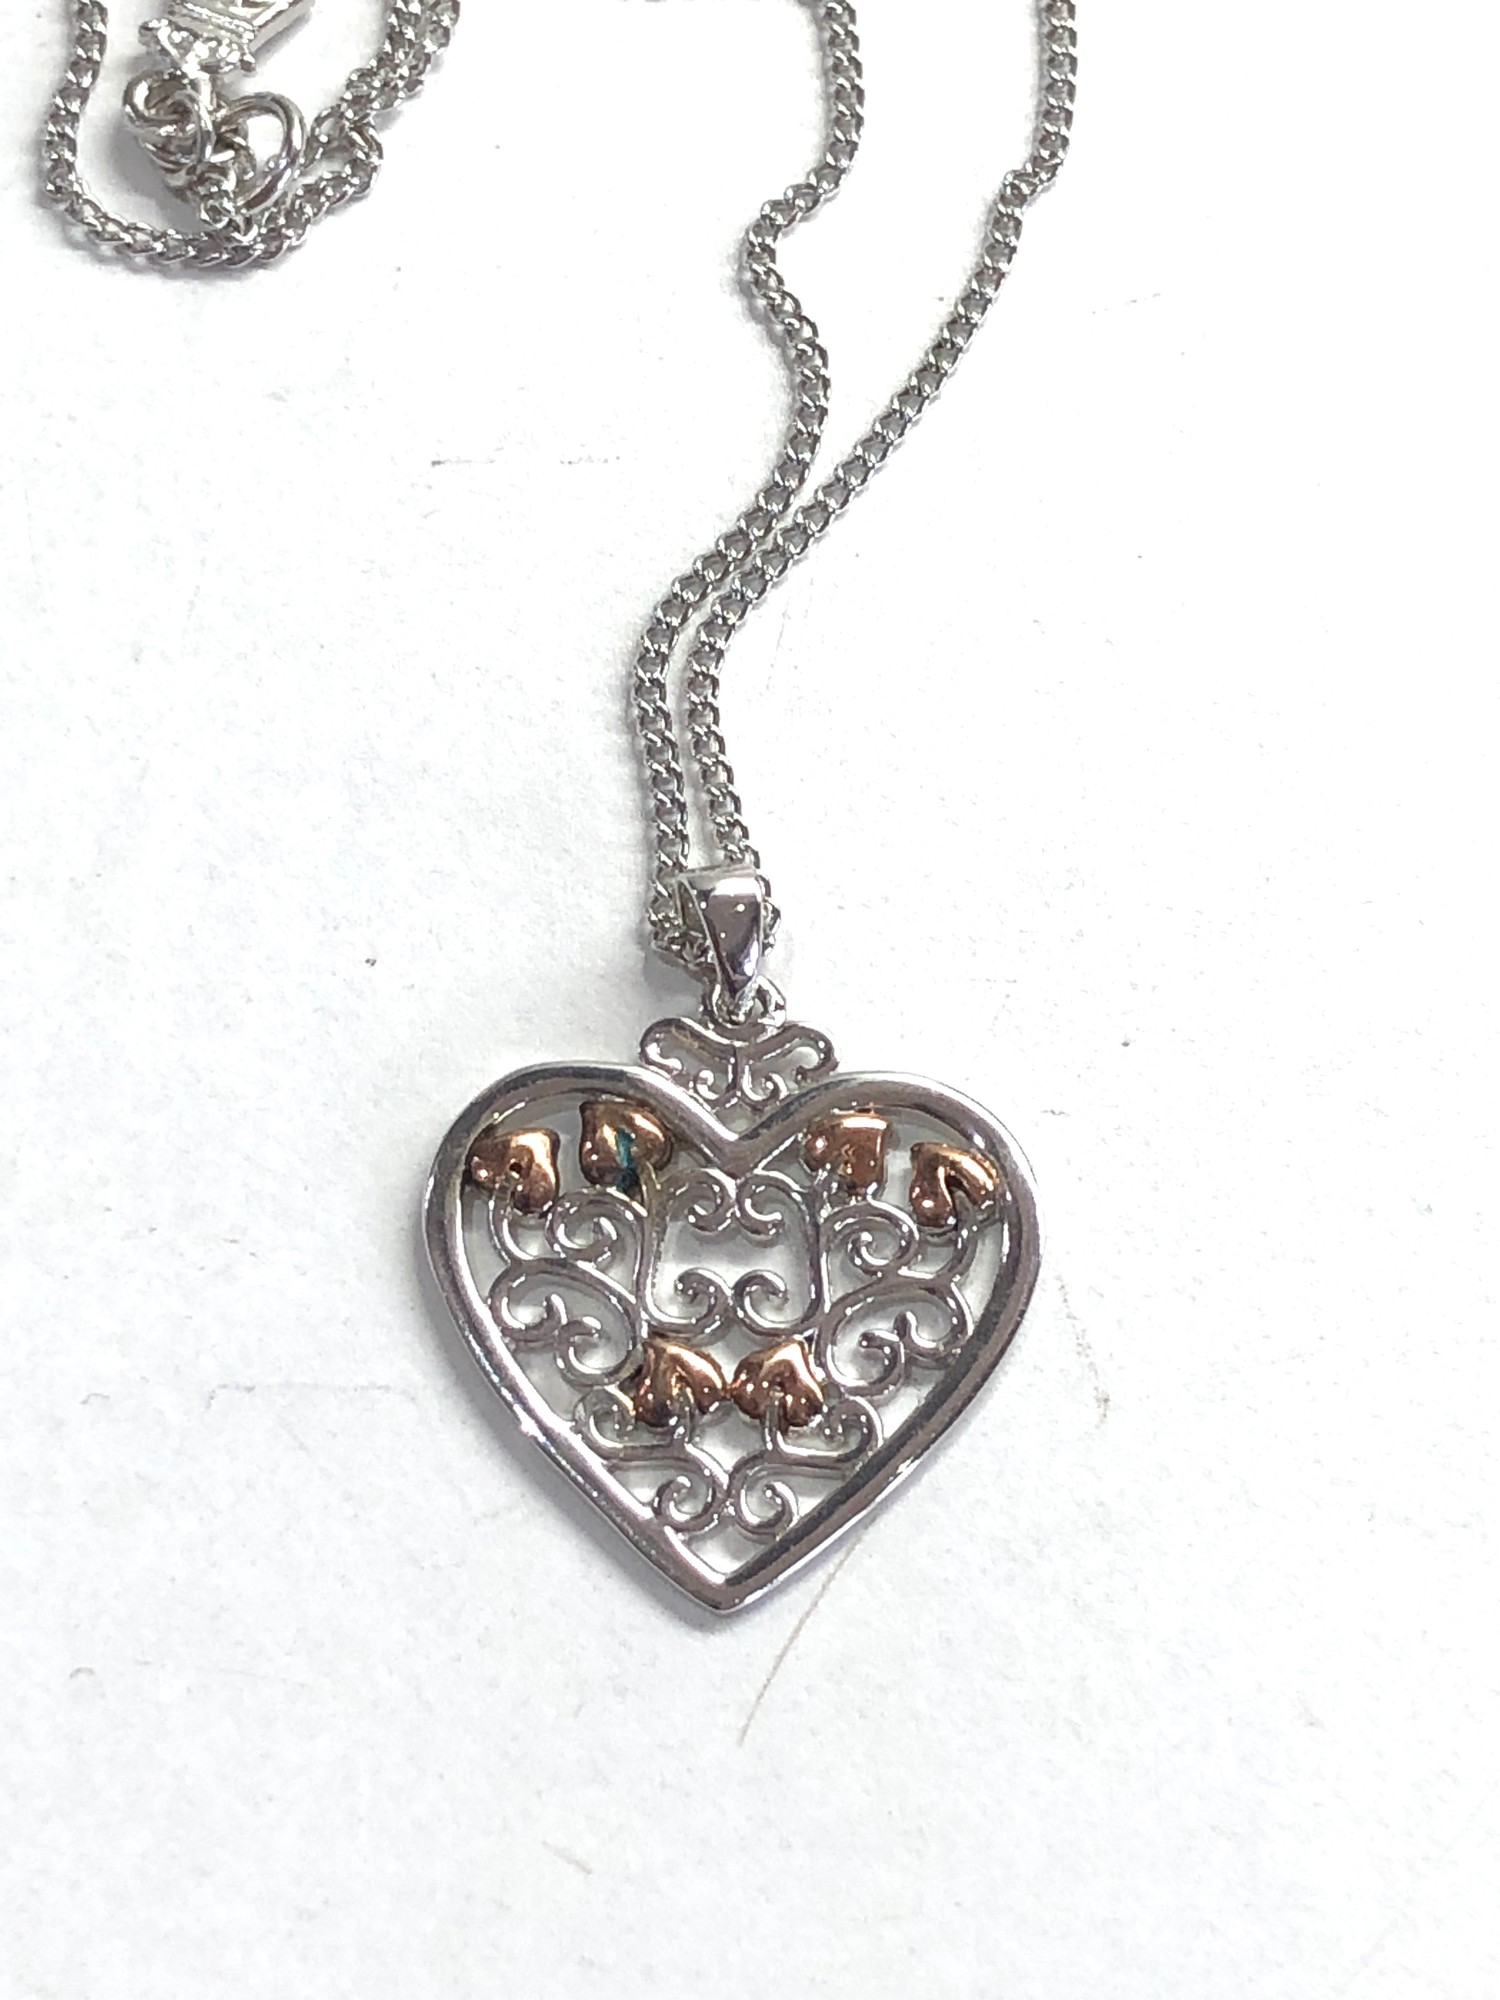 Clogau silver heart pendant and chain - Image 2 of 4